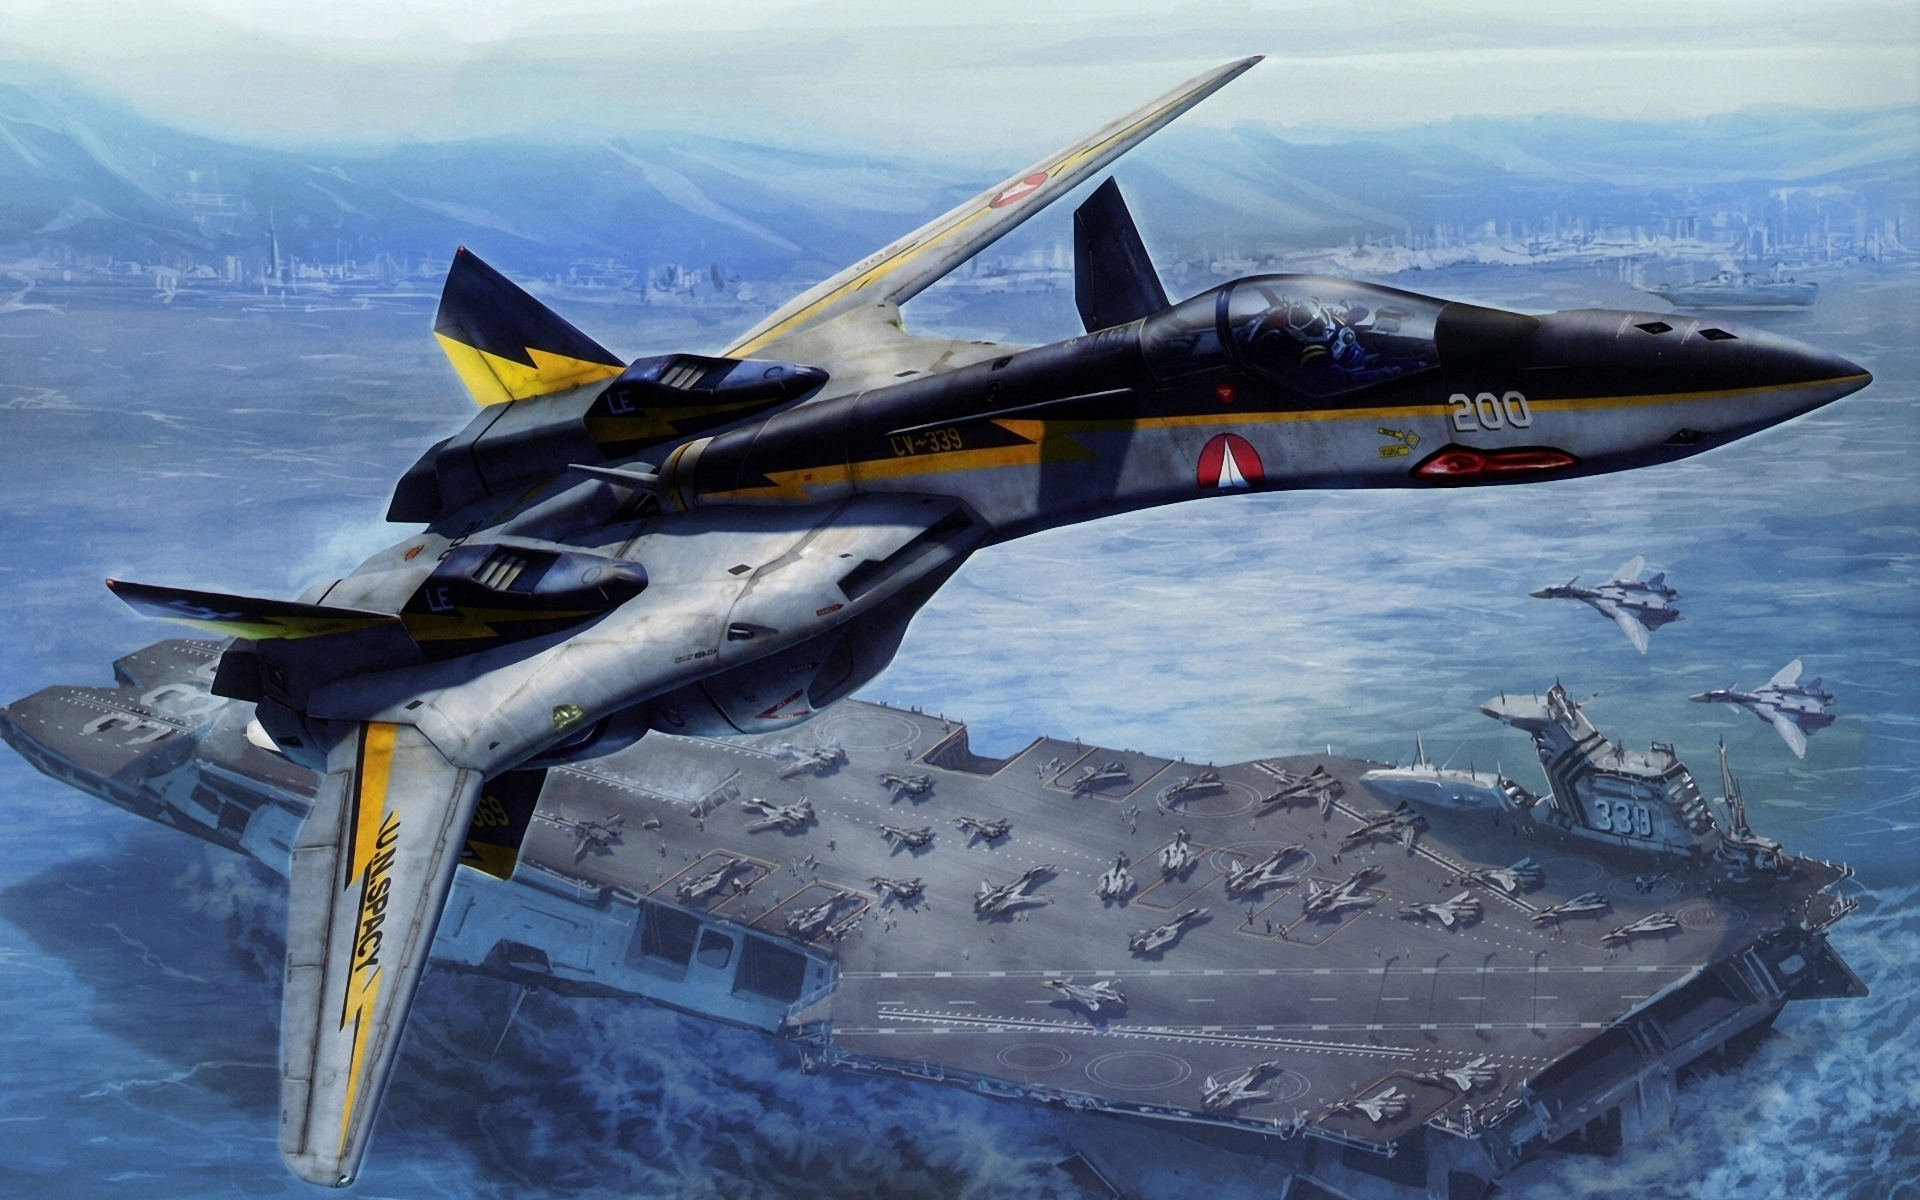 Airplane Wallpaper Iphone X Macross Full Hd Wallpaper And Background Image 1920x1200